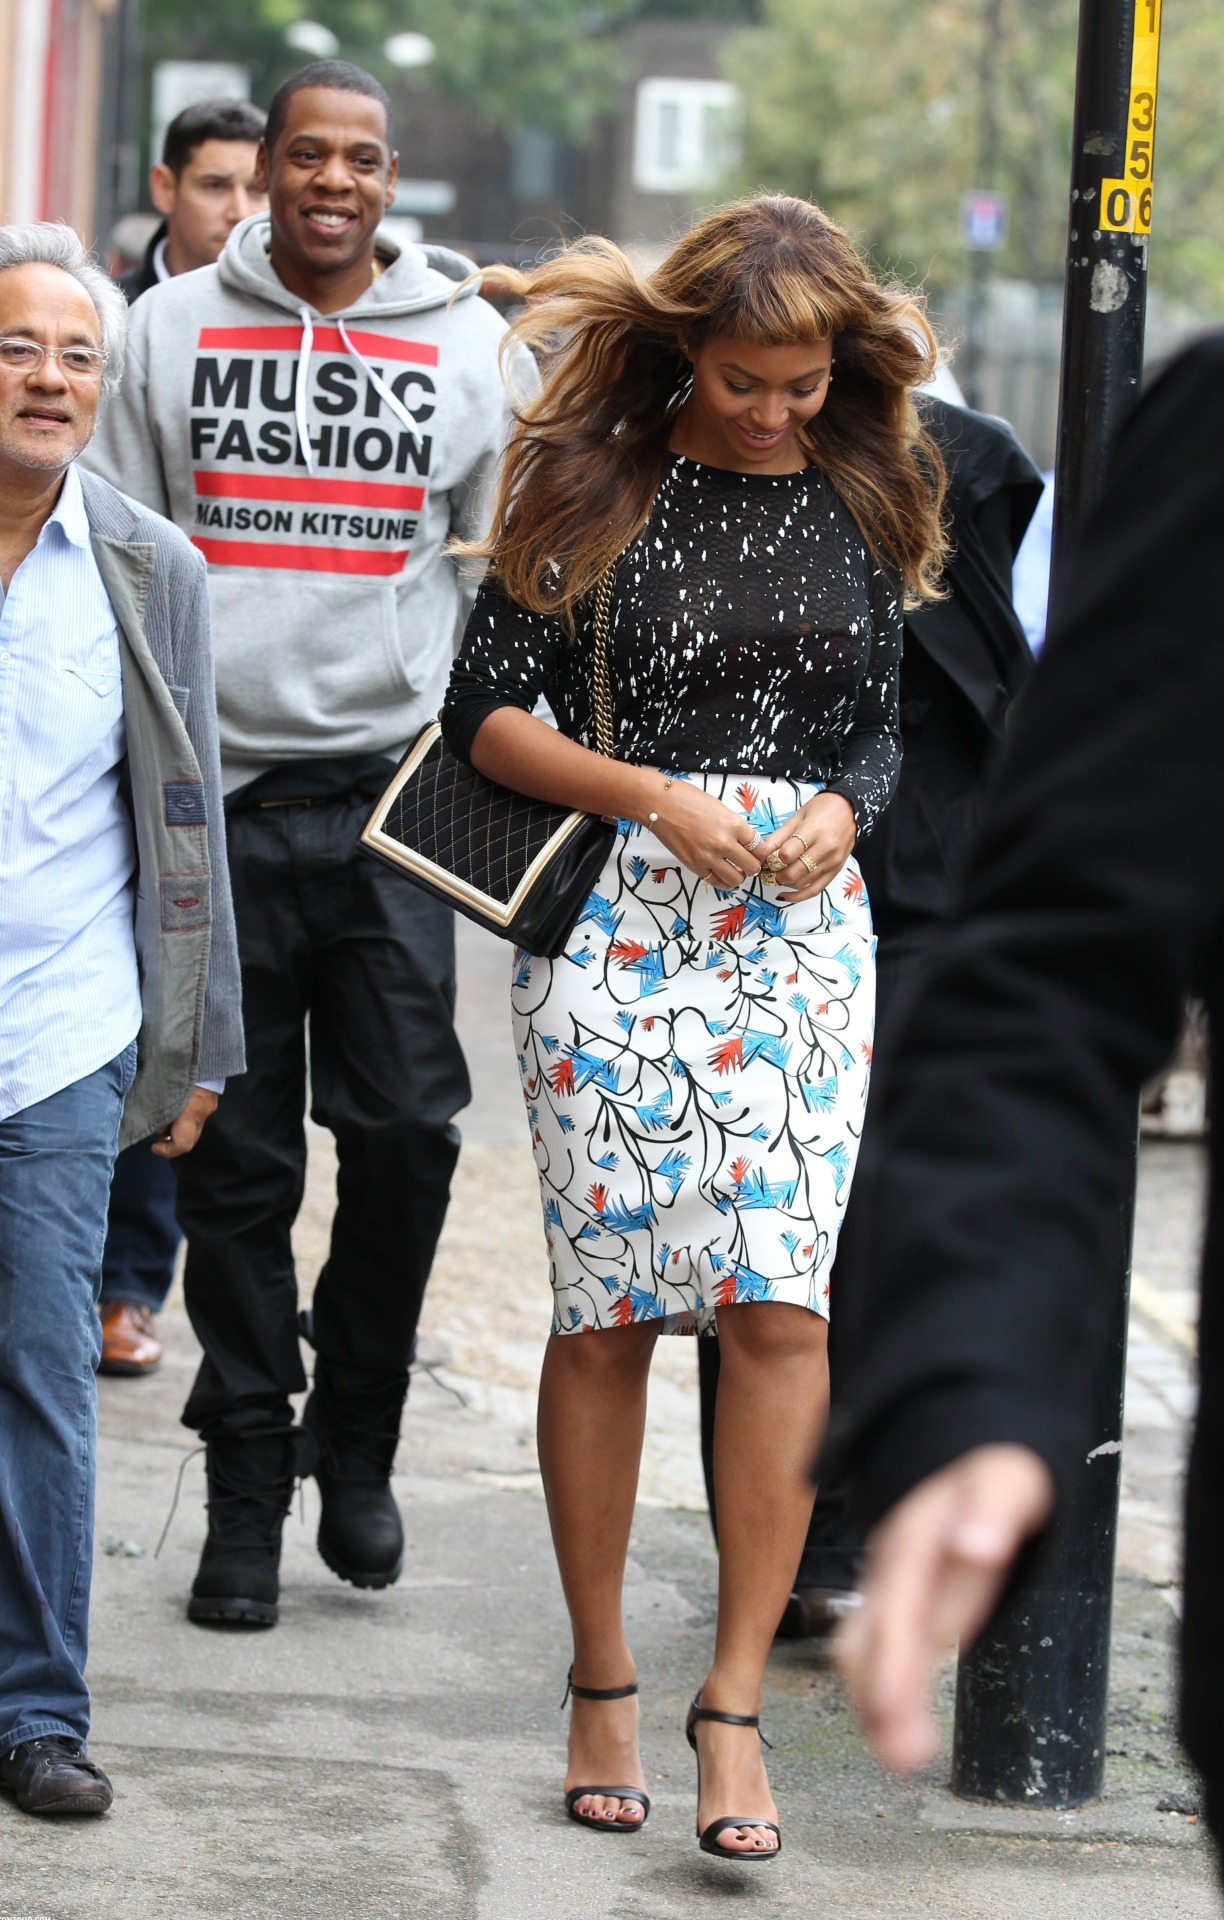 beyoncefashionstyle: